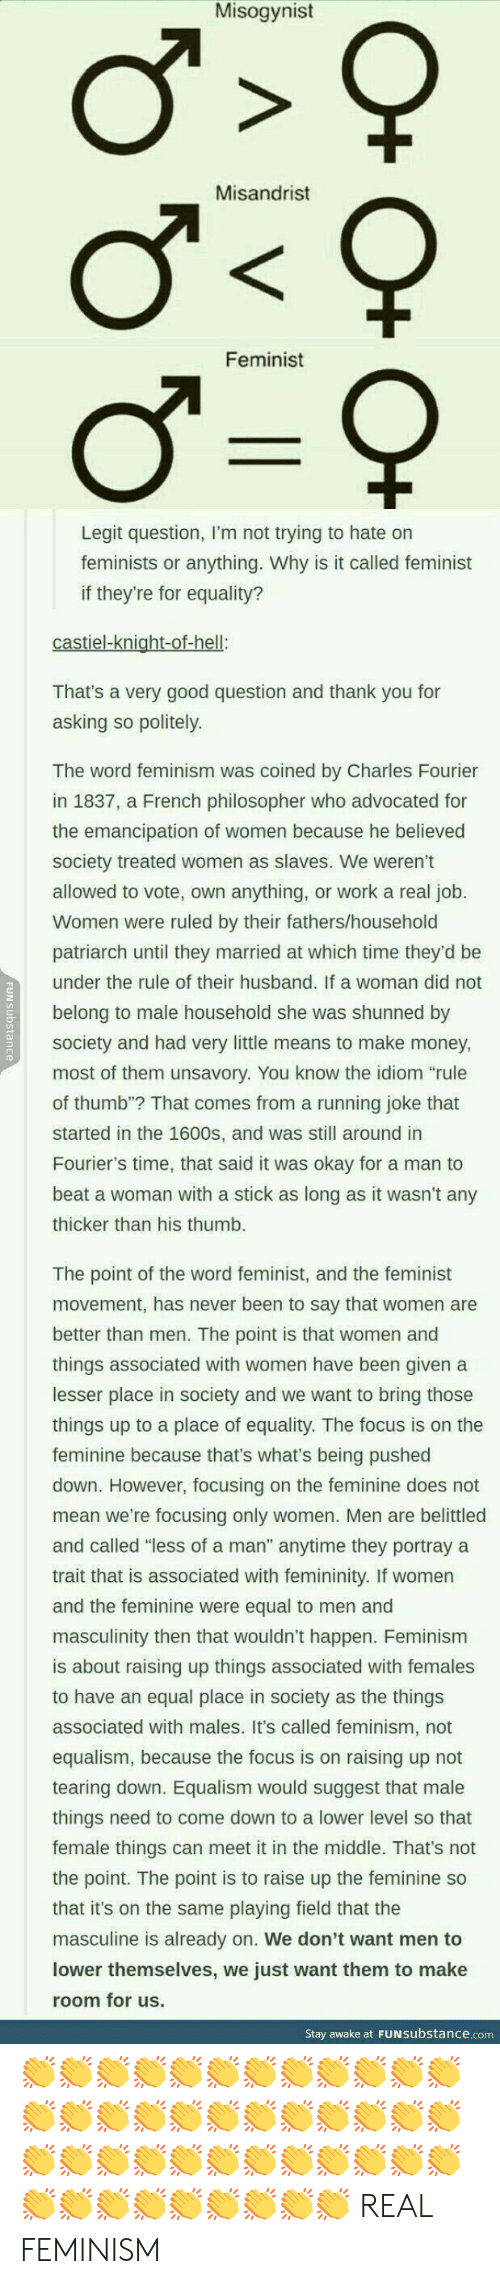 """Equalism: Misogynist  Misandrist  Feminist  Legit question, I'm not trying to hate orn  feminists or anything. Why is it called feminist  if they're for equality?  That's a very good question and thank you for  asking so politely  The word feminism was coined by Charles Fourier  in 1837, a French philosopher who advocated for  the emancipation of women because he believed  society treated women as slaves. We weren't  allowed to vote, own anything, or work a real job  Women were ruled by their fathers/household  patriarch until they married at which time they'd be  under the rule of their husband. If a woman did not  belong to male household she was shunned by  society and had very little means to make money  most of them unsavory. You know the idiom """"rule  of thumb""""? That comes from a running joke that  started in the 1600s, and was still around in  Fourier's time, that said it was okay for a man to  beat a woman with a stick as long as it wasn't any  thicker than his thumb  The point of the word feminist, and the feminist  movement, has never been to say that women are  better than men. The point is that women and  things associated with women have been given a  lesser place in society and we want to bring those  things up to a place of equality. The focus is on the  feminine because that's what's being pushed  down. However, focusing on the feminine does not  mean we're focusing only women. Men are belittled  and called """"less of a man"""" anytime they portray a  trait that is associated with femininity. If women  and the feminine were equal to men and  masculinity then that wouldn't happen. Feminism  is about raising up things associated with females  to have an equal place in society as the things  associated with males. It's called feminism, not  equalism, because the focus is on raising up not  tearing down. Equalism would suggest that male  things need to come down to a lower level so that  female things can meet it in the middle. That's not  the point. The point"""